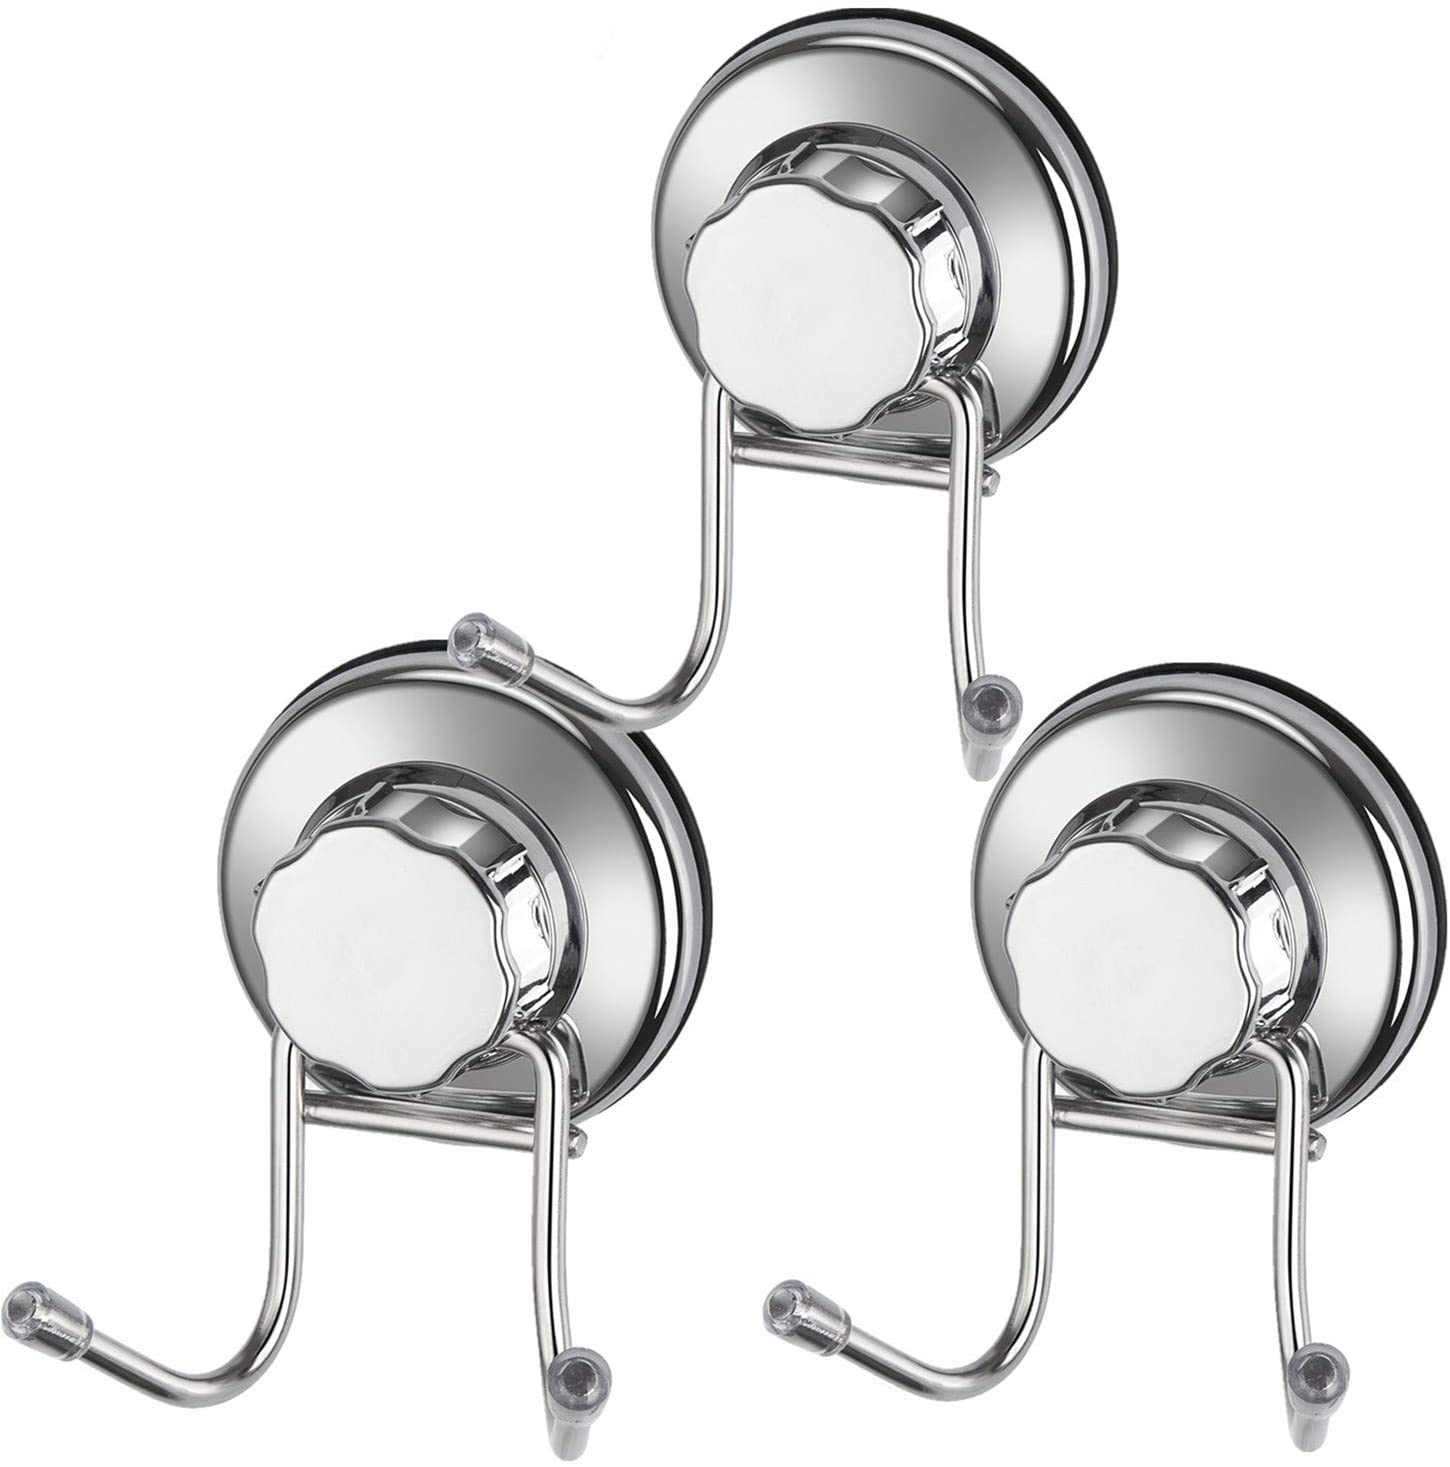 iPEGTOP Double Hook Suction Cup Vacuum Hooks Kitchen Towel Hooks Removable Wall Holder Robe Hangers, Utility Hooks for Flat Smooth Tile, Glass and Mirror, 3 Pack